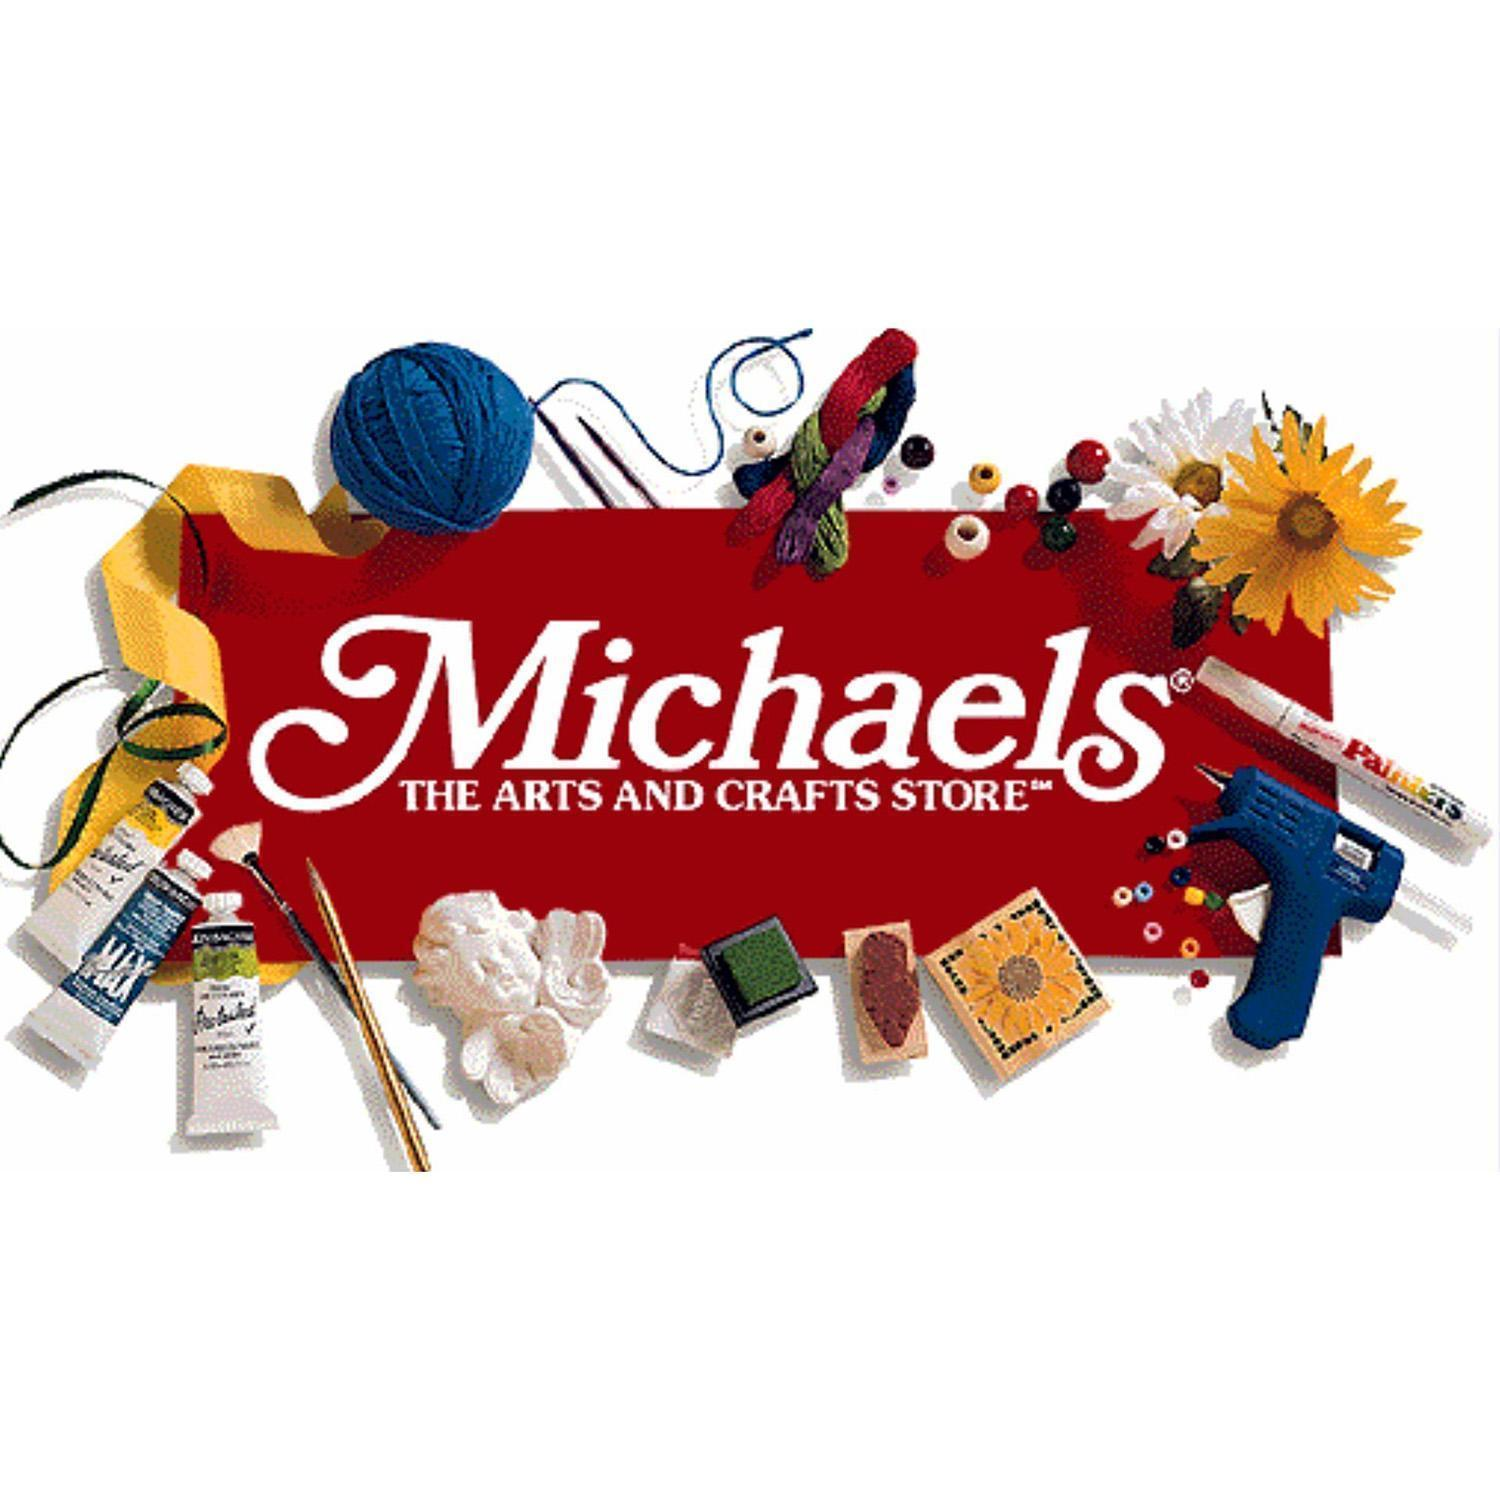 michaels arts and crafts 60 off printable coupon